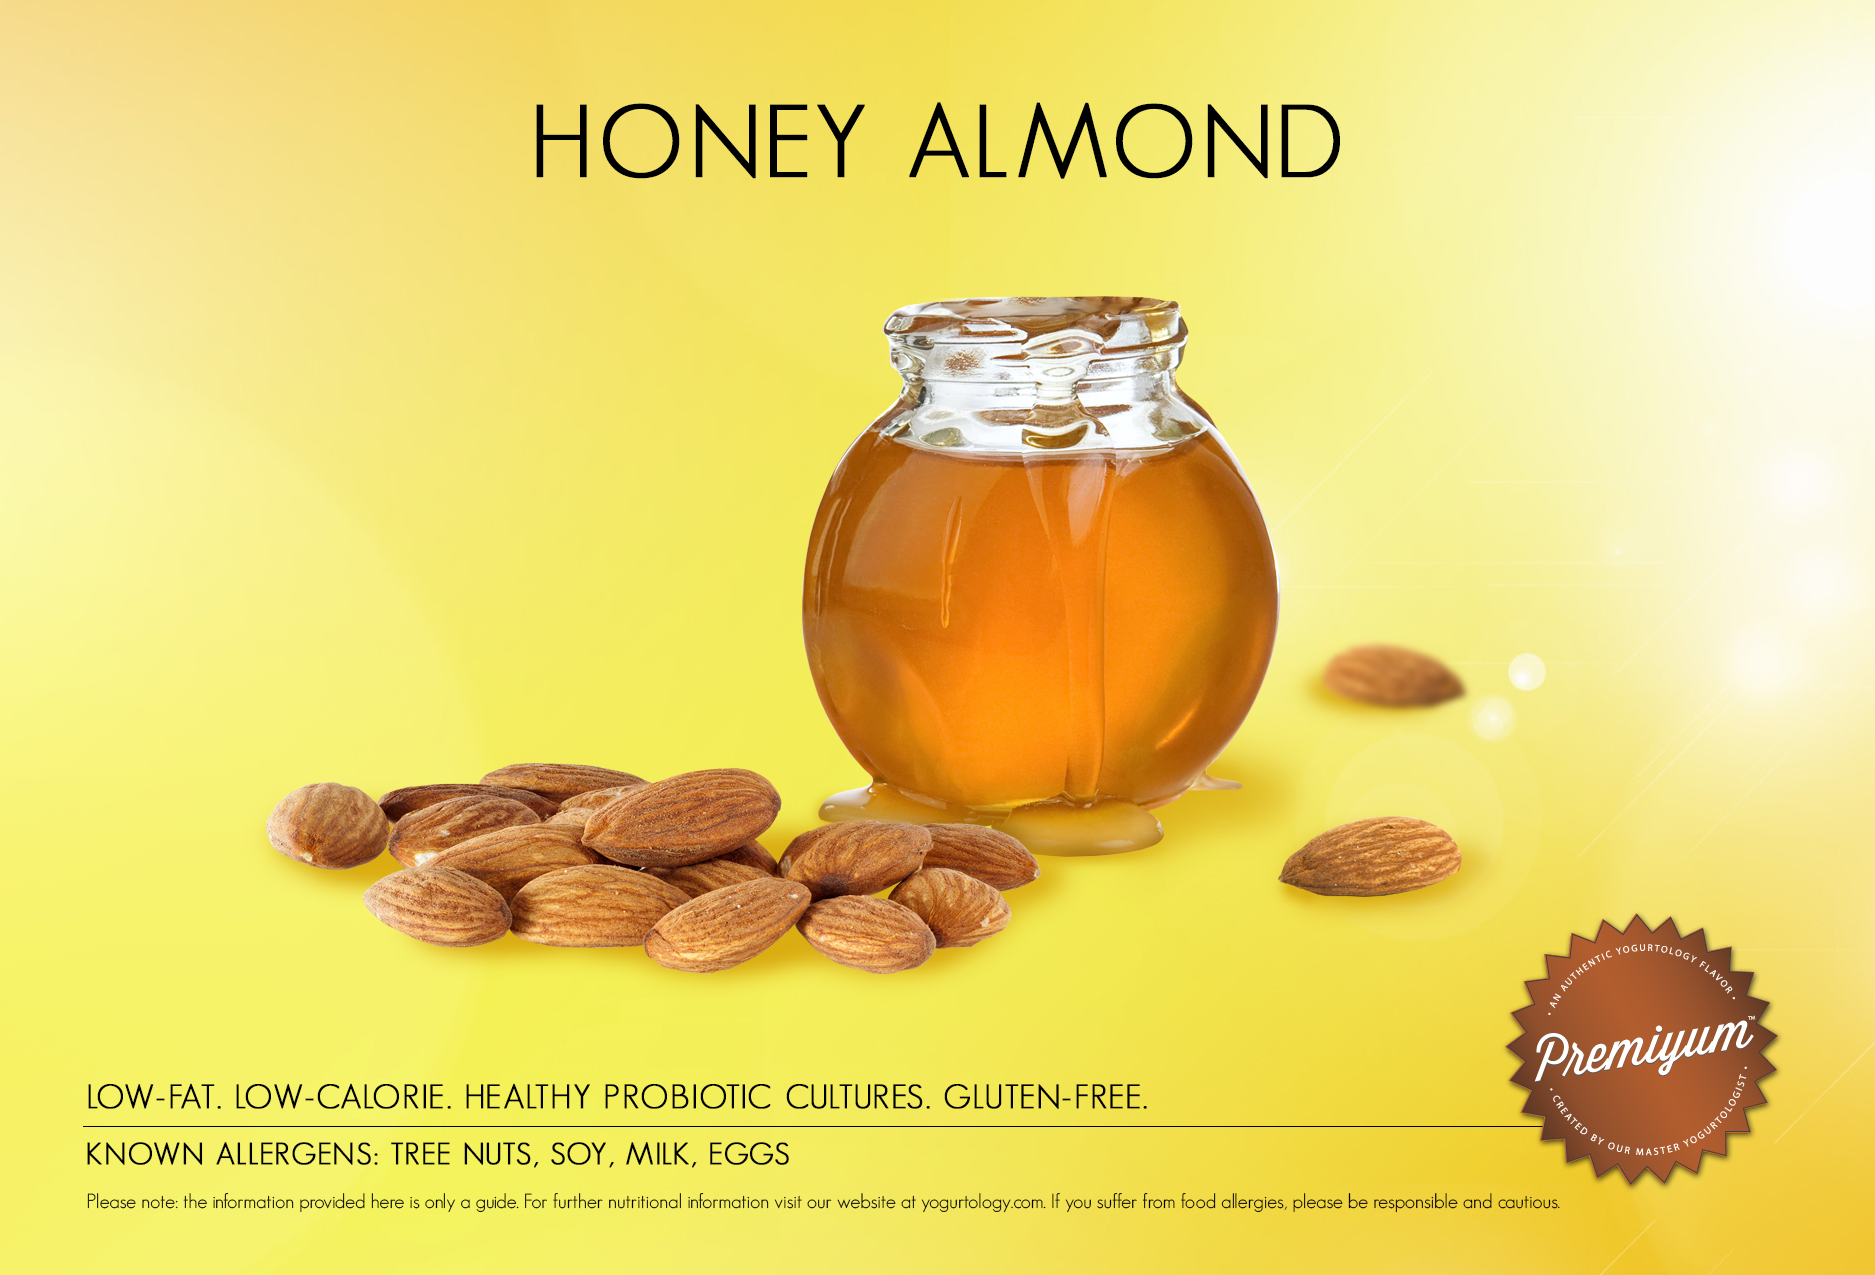 Honey Almond